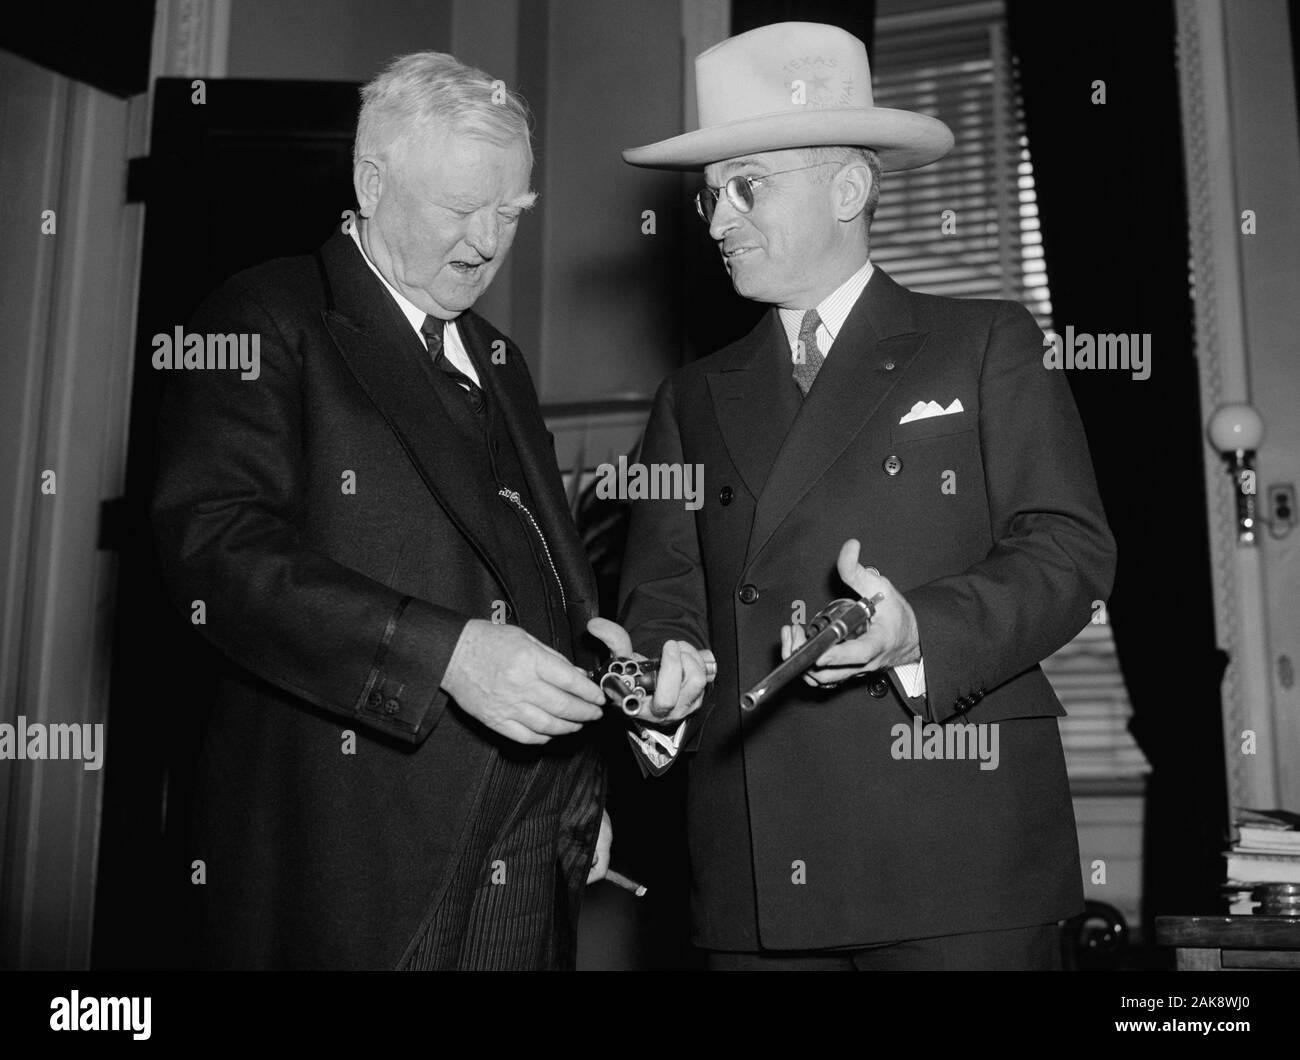 Vintage photo of US Vice President John Nance Garner (left) being shown a pair of 45-caliber pistols by Missouri Senator - and future President - Harry S Truman. The guns were said to have been once owned by the notorious outlaw Jesse James and had been obtained by Truman from the wife of a doctor who had been given them by Jesse's brother Frank as payment for medical services. Photo by Harris & Ewing taken in Washington DC on February 17 1938. Garner (1868 – 1967) was the 32nd Vice President (1933 – 1941) and Truman (1884 – 1972) would later become the 33rd US President (1945 – 1953). Stock Photo